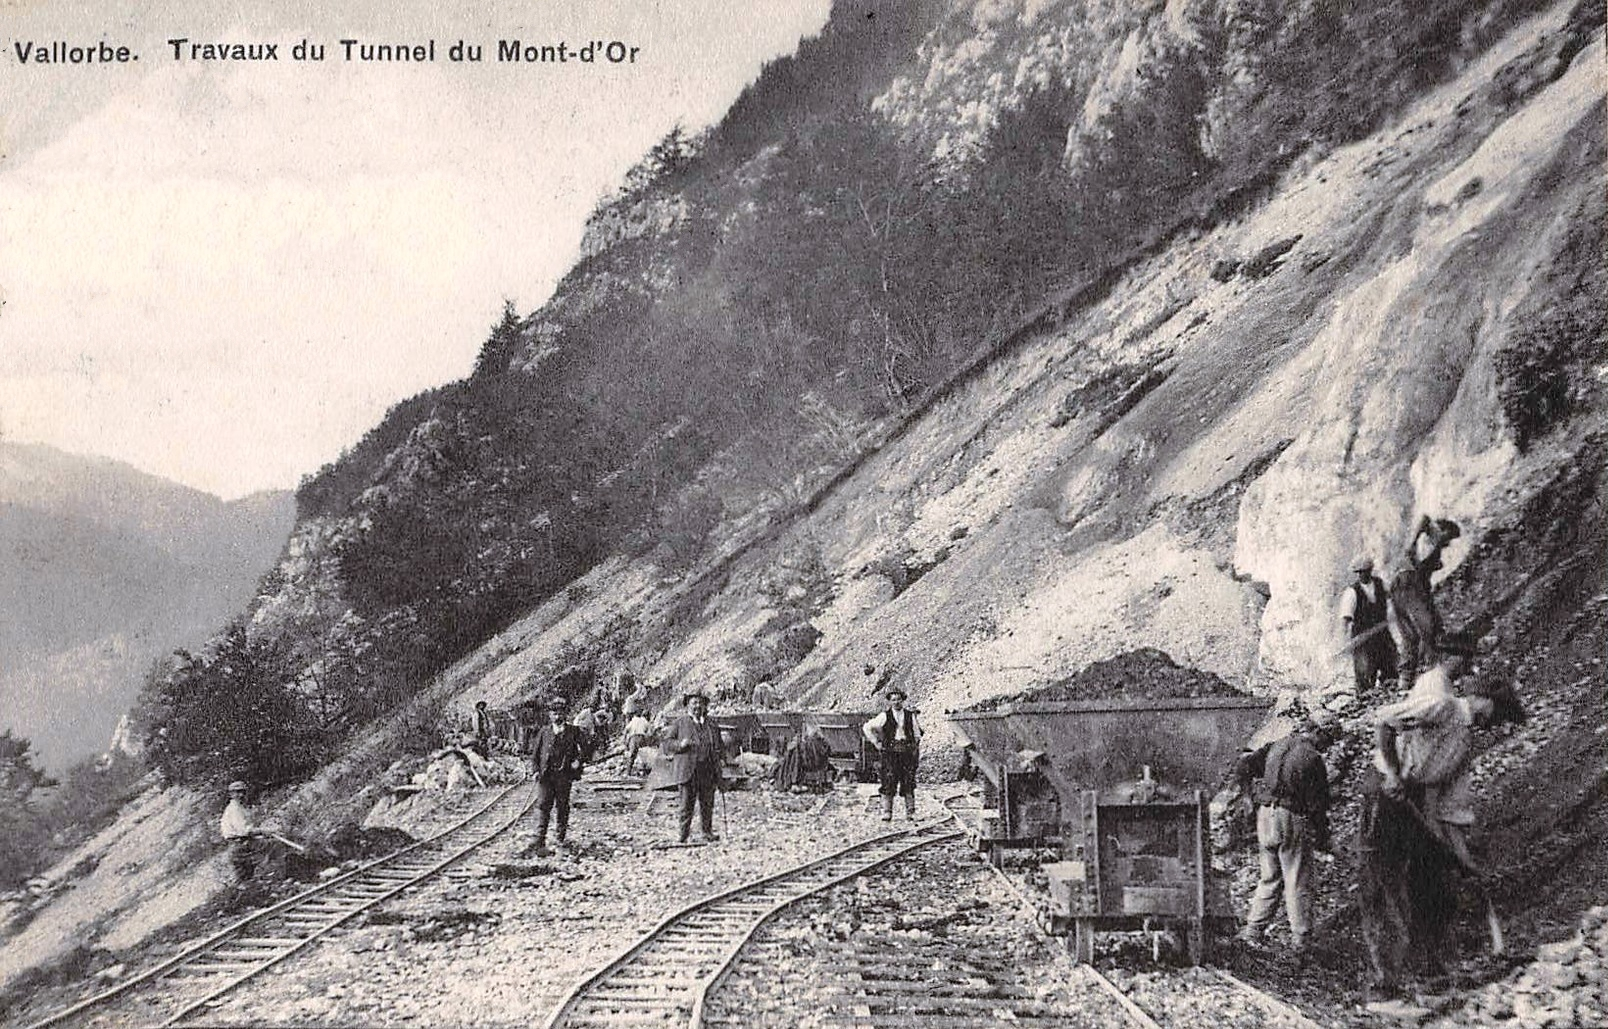 Le tunnel du Mont-d'Or : une épopée internationale